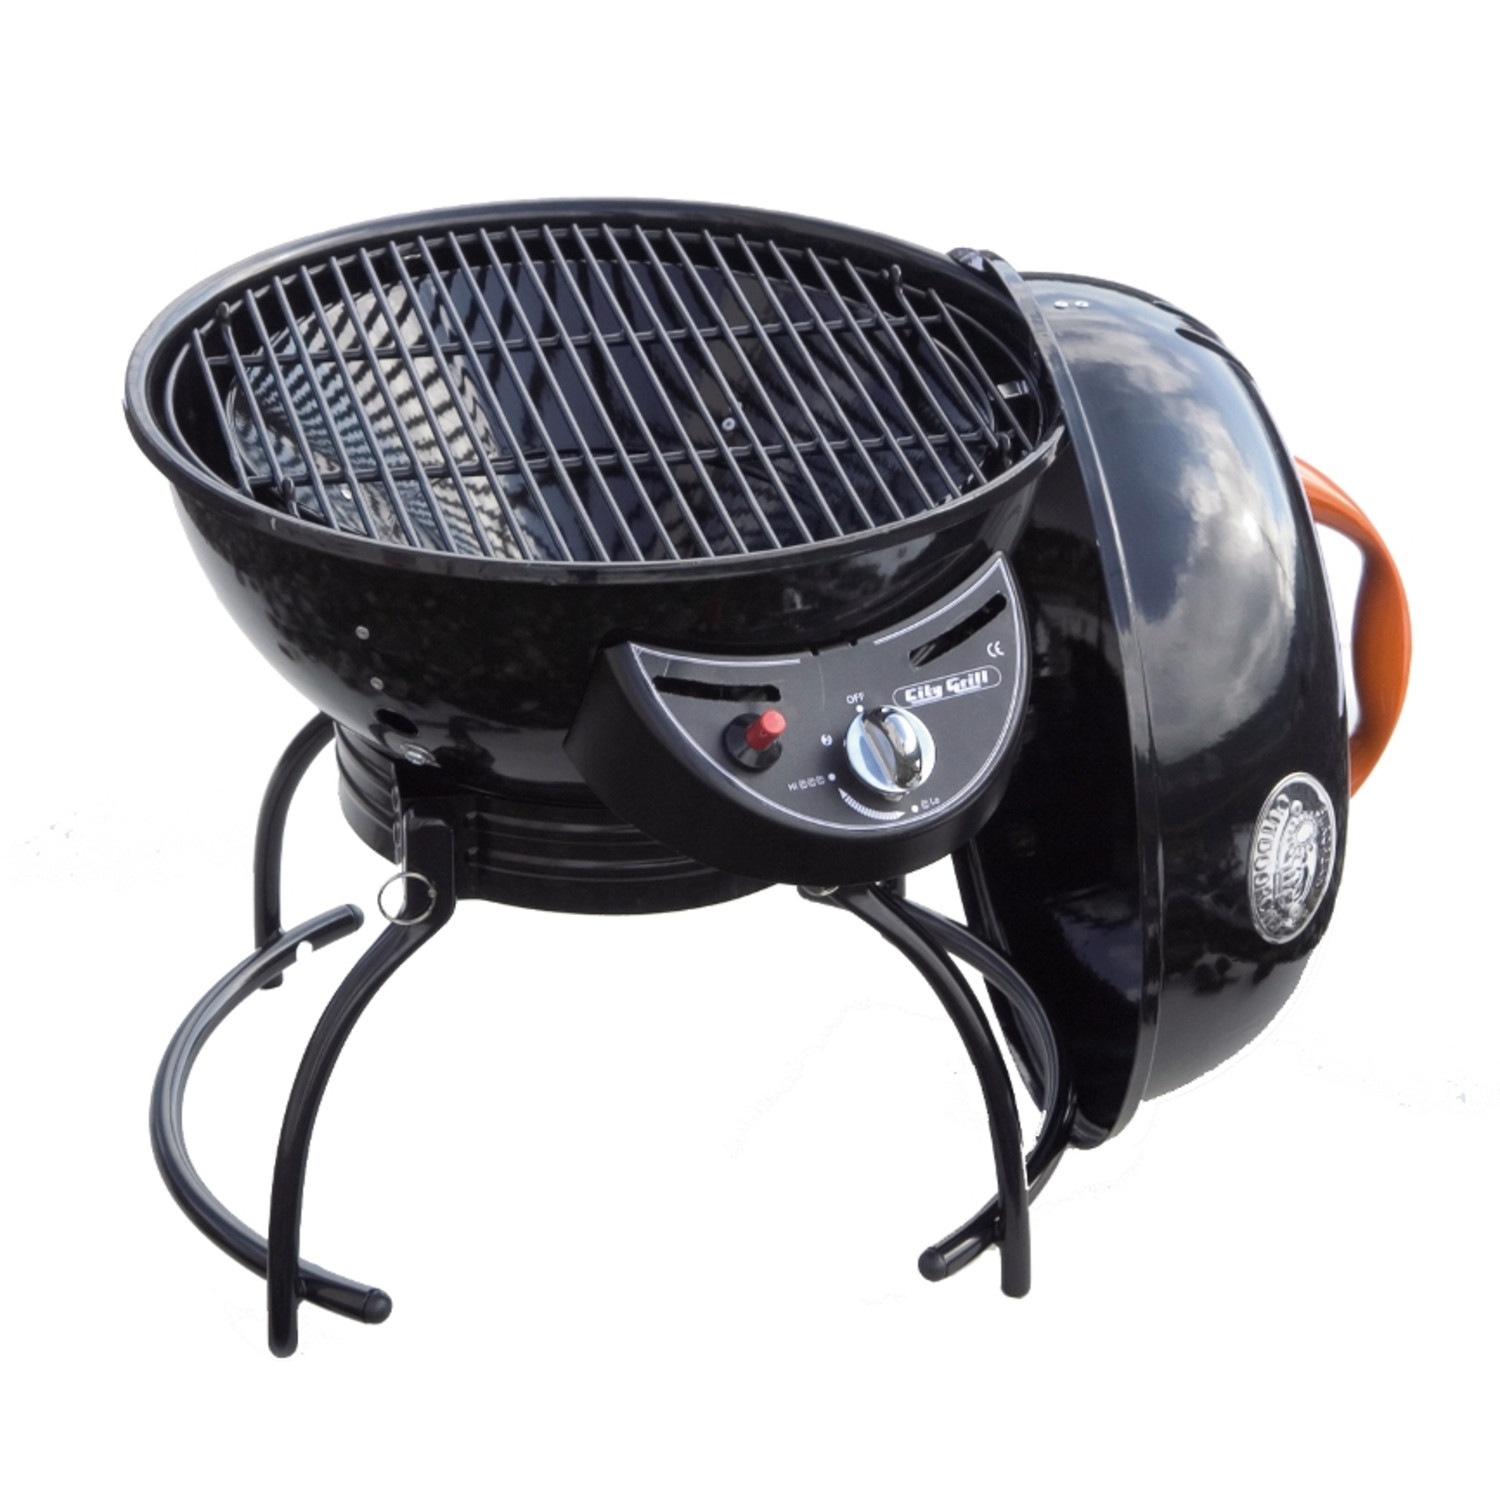 new city grill portable gas kettle barbecue from. Black Bedroom Furniture Sets. Home Design Ideas